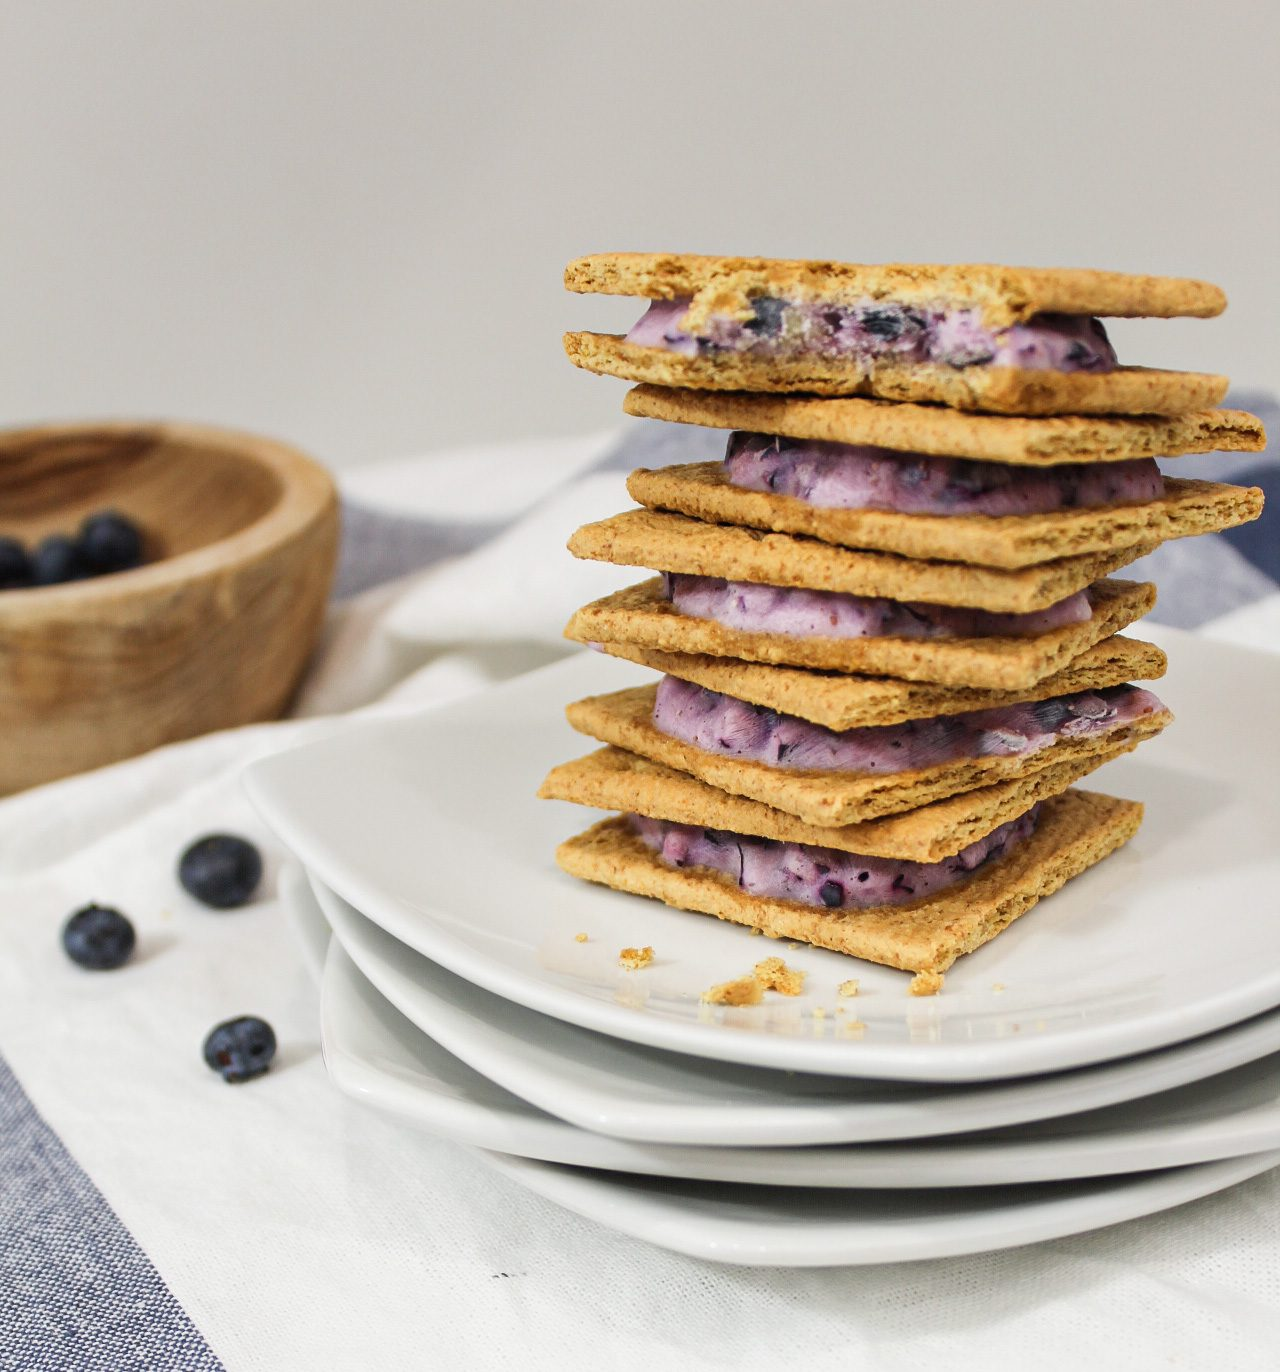 Blueberry Frozen Yogurt Sandwiches